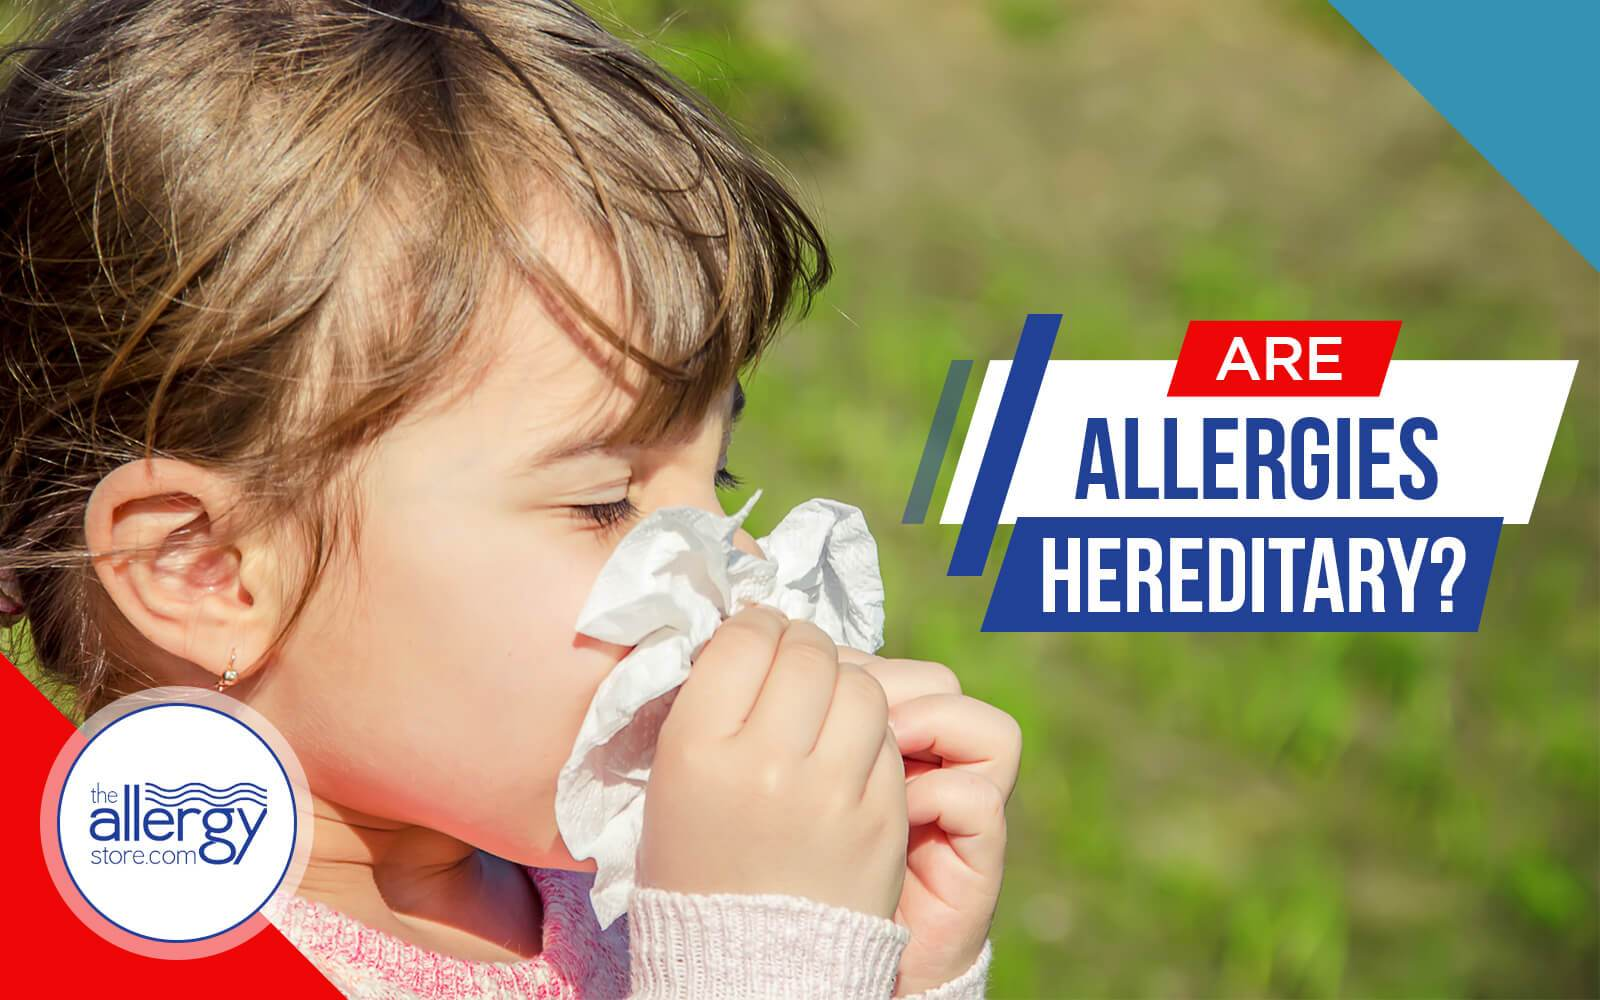 Are Allergies Hereditary?